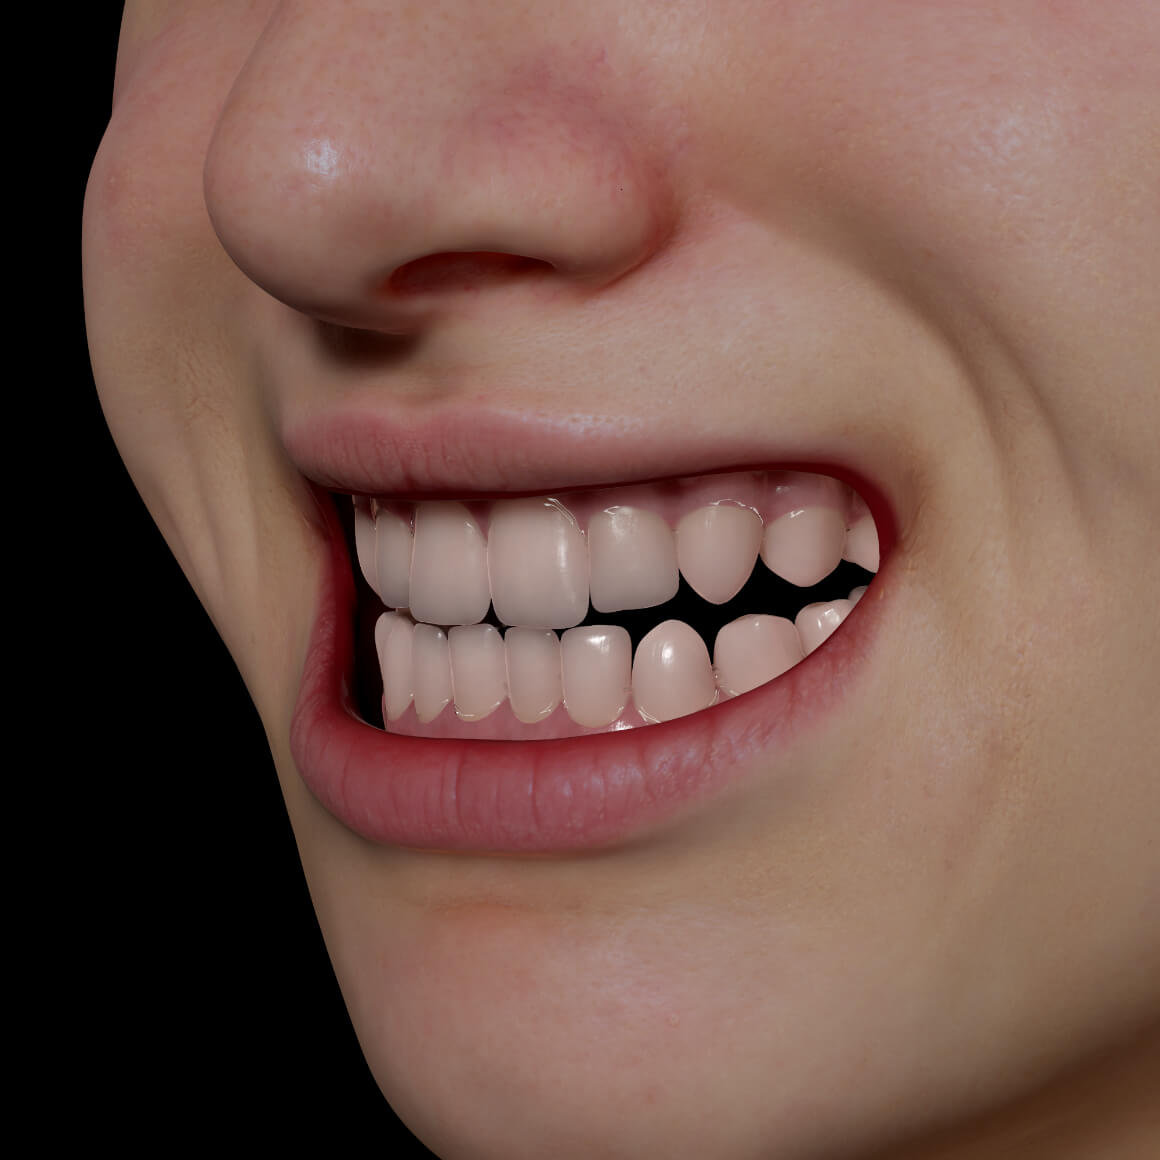 Smile of a Clinique Chloé patient positioned at an angle showing straight teeth after Invisalign teeth alignment treatment